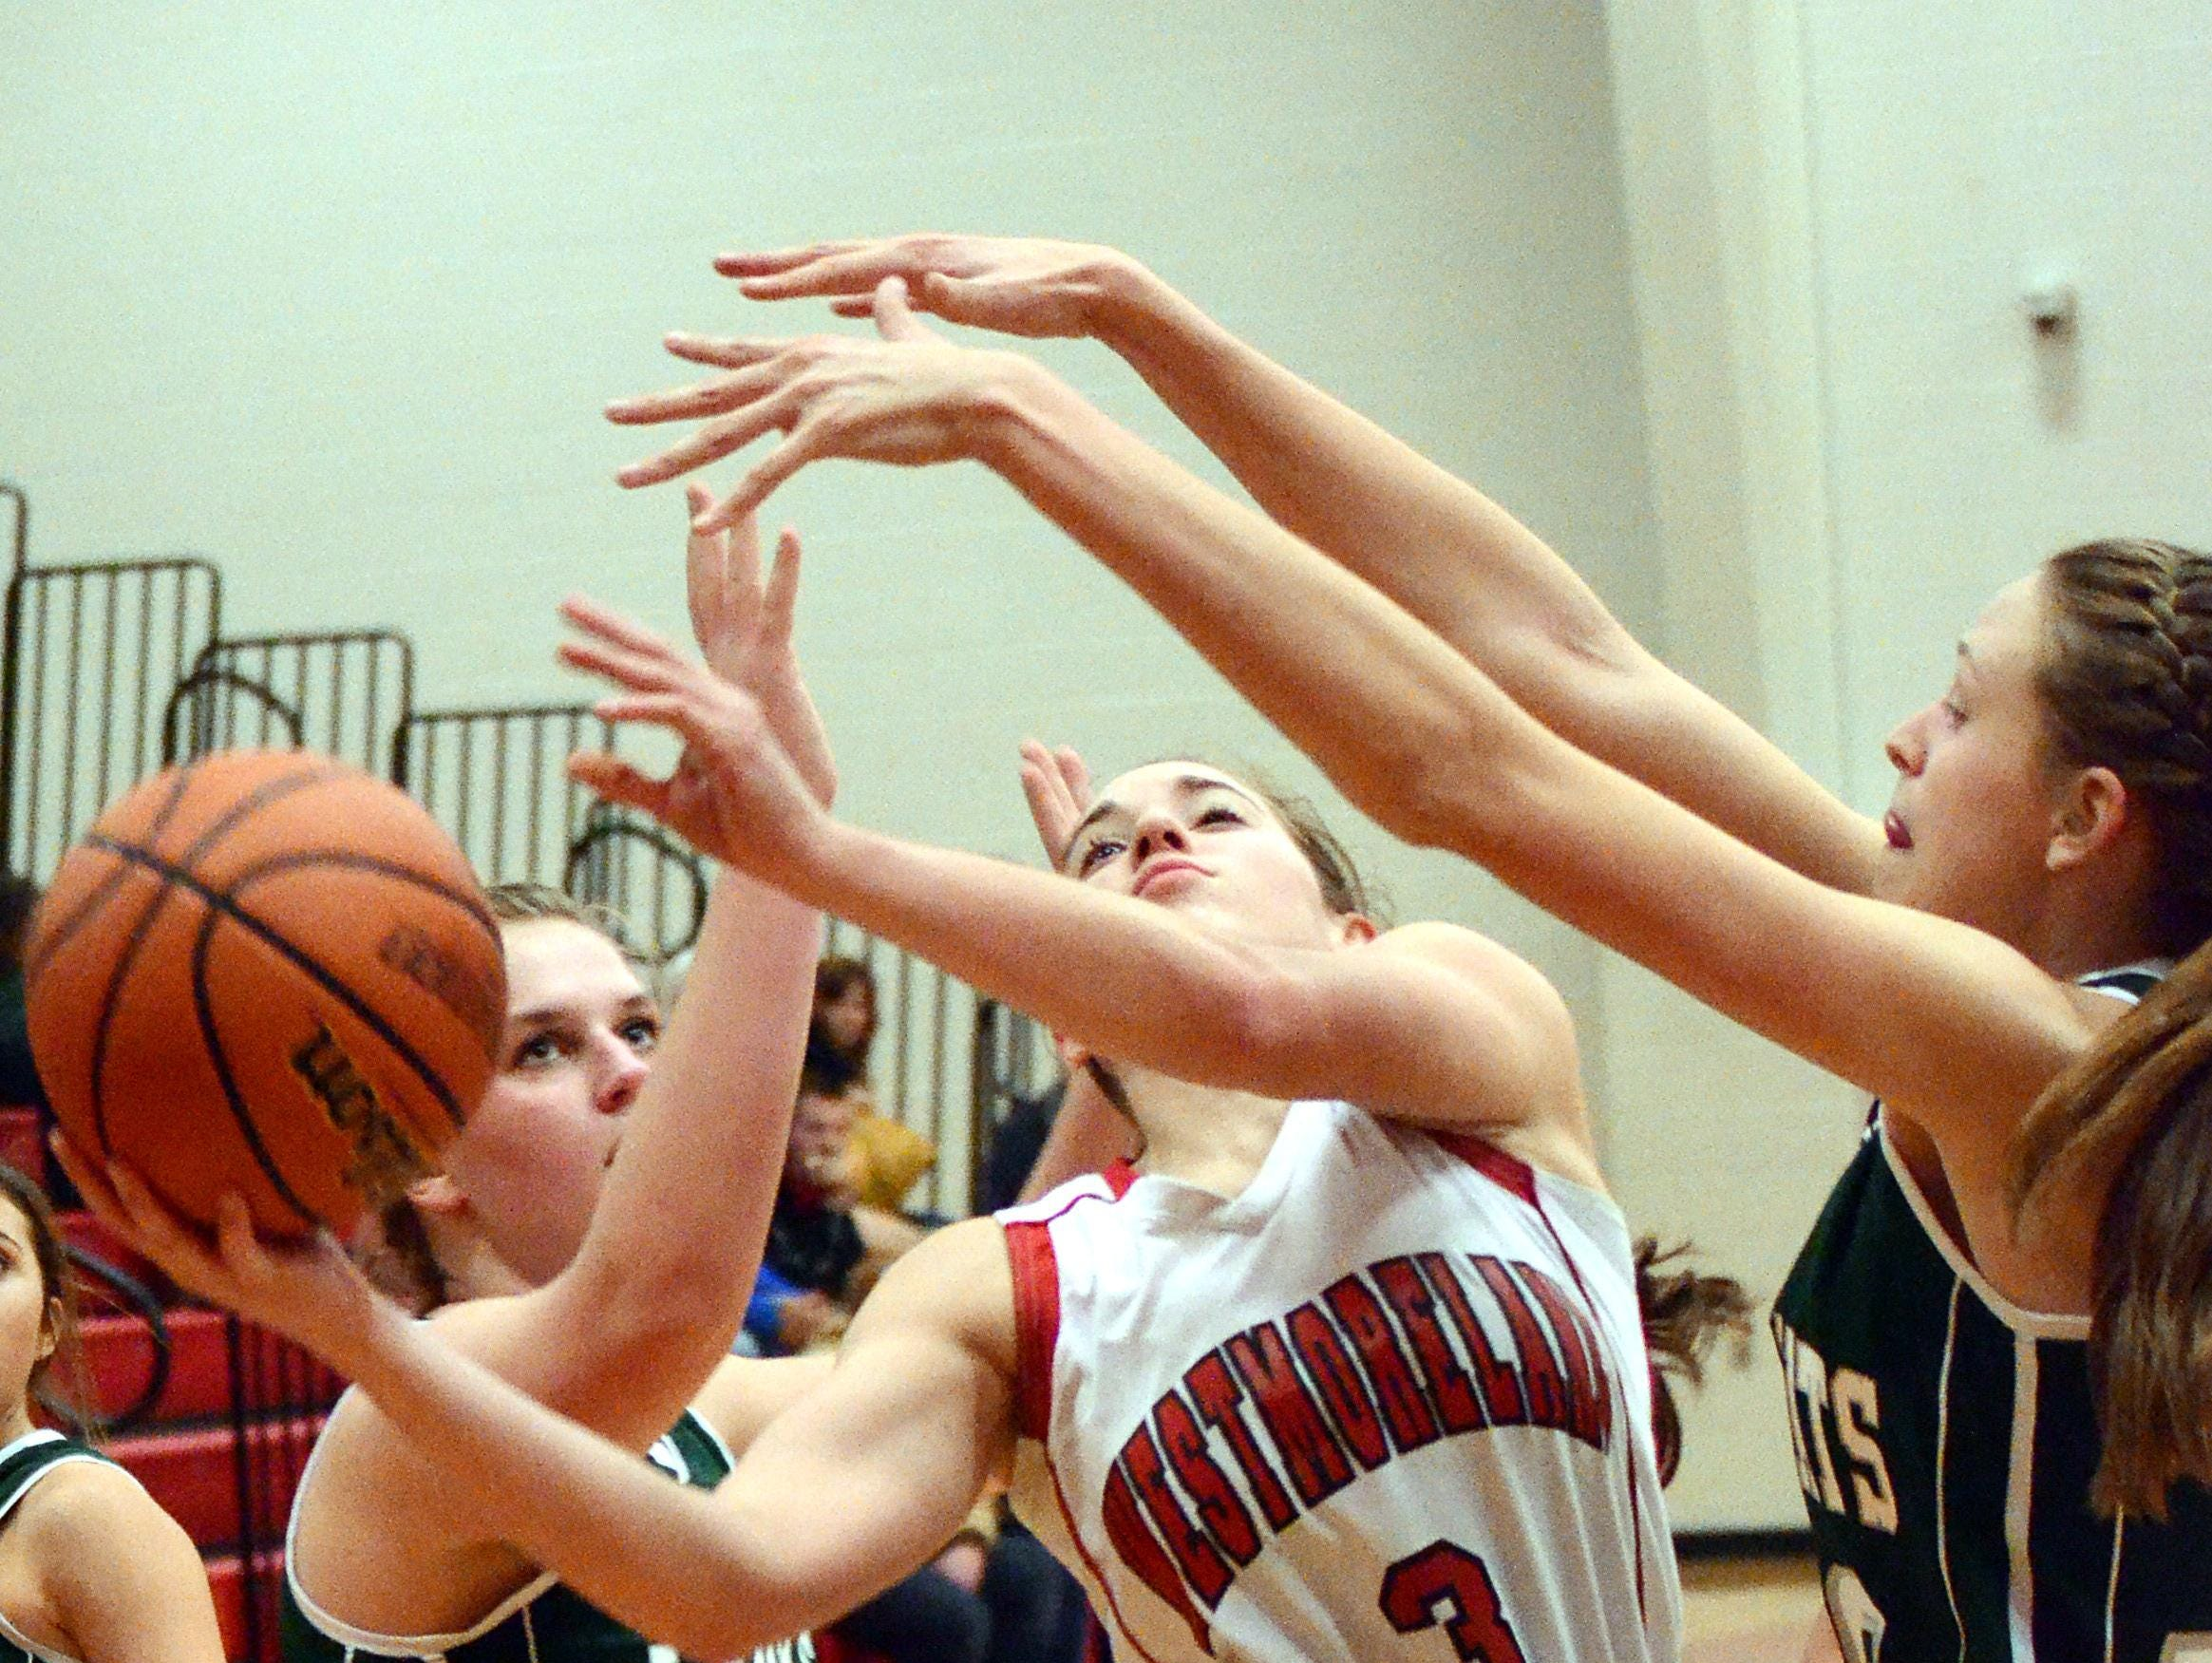 Westmoreland High junior point guard Gracie Oliver elevates for a third-quarter layin between Greenbrier junior Anna Stainback (at left) and sophomore Haley Ralph. Oliver scored four points in the Lady Eagles' 40-29 victory on Friday evening.